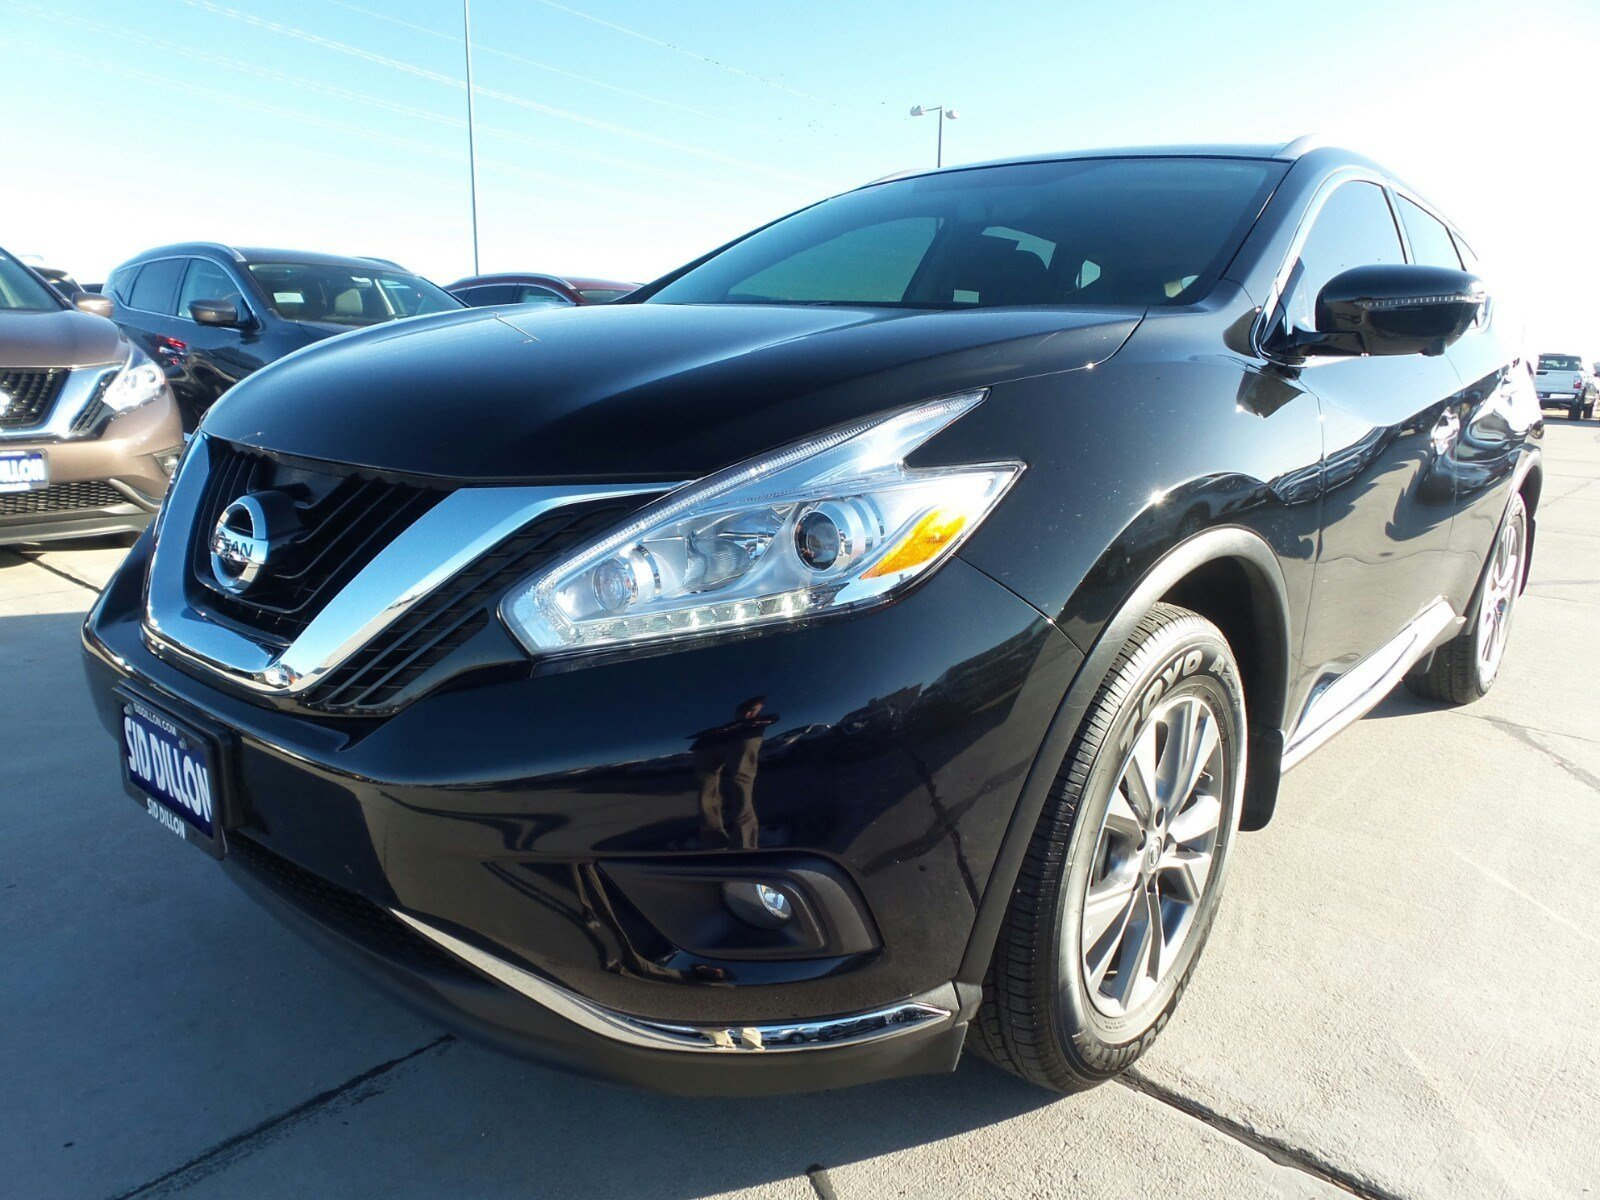 Certified Pre-Owned 2016 Nissan Murano SL SUV in Lincoln ...